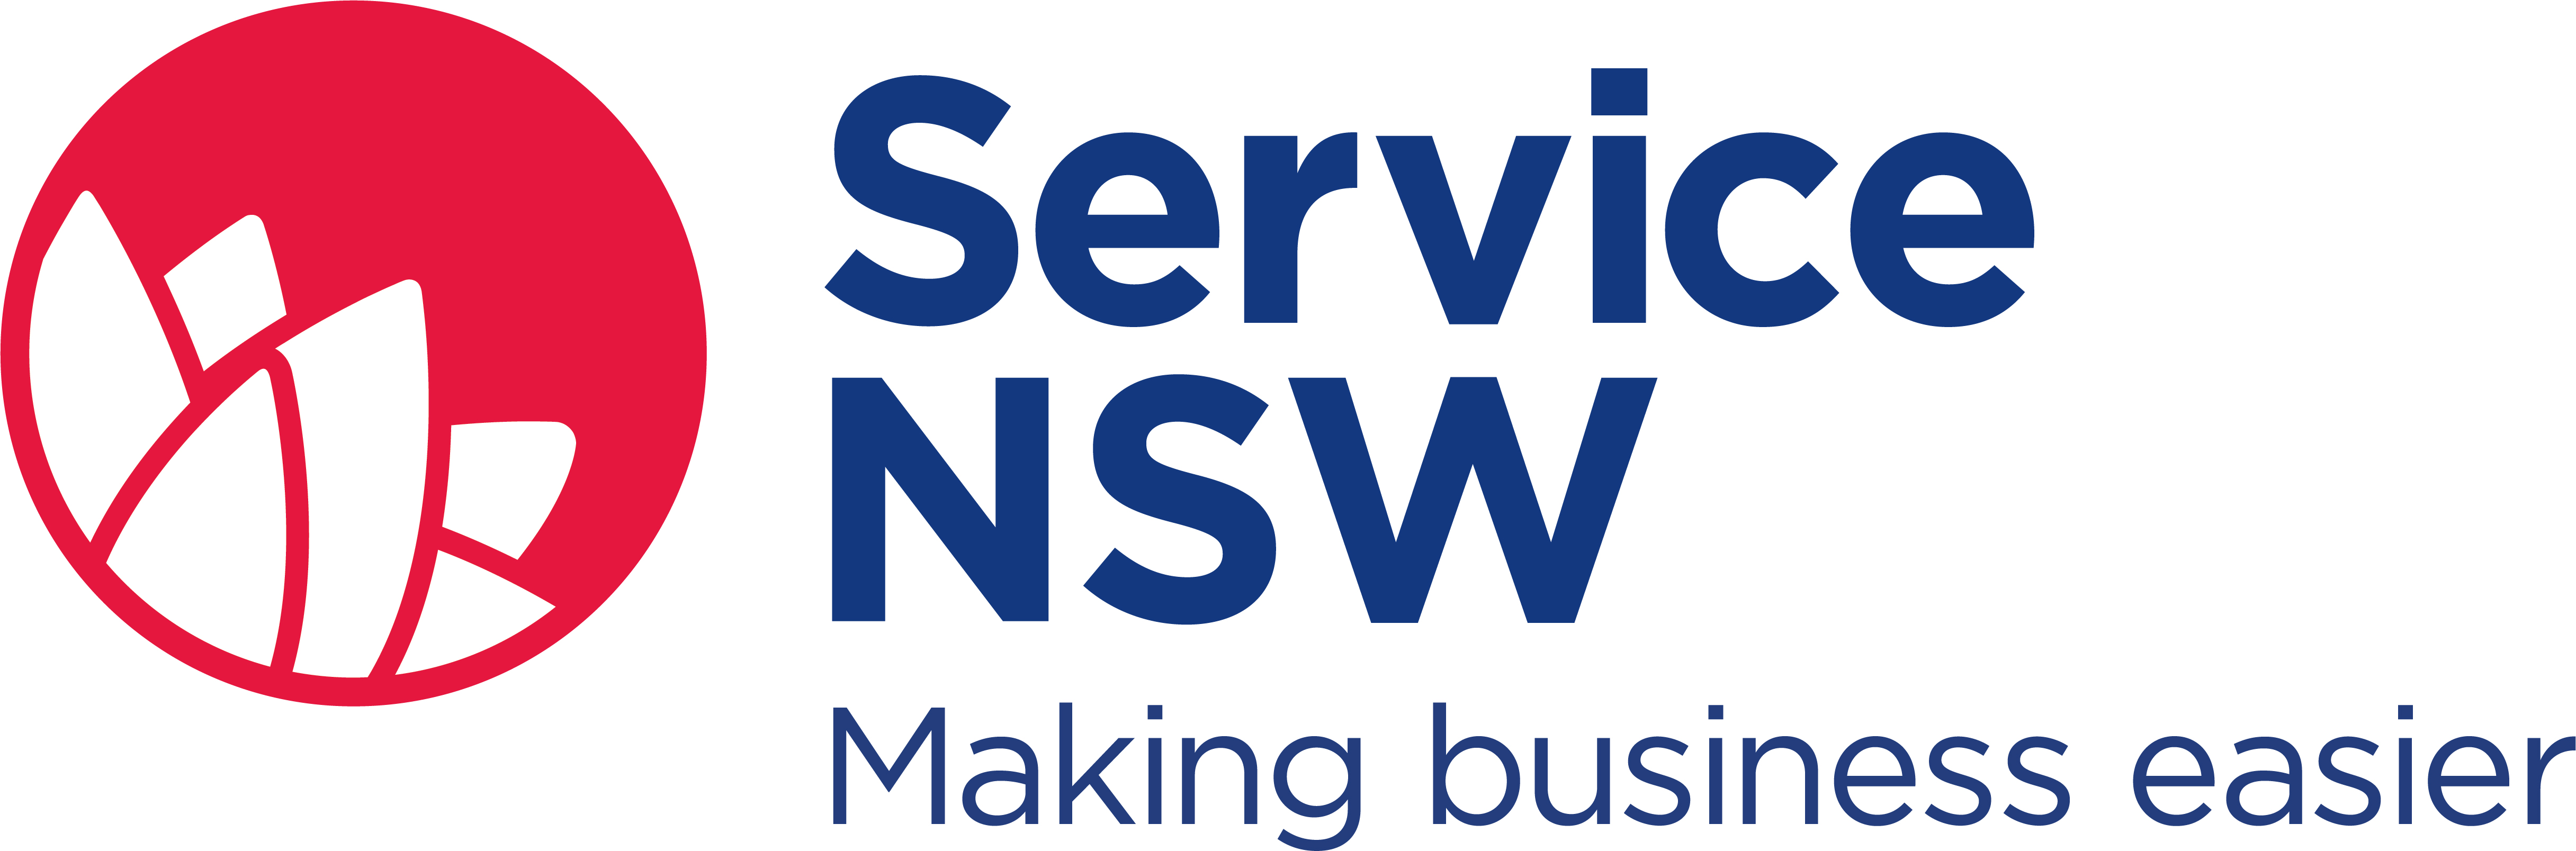 Service-NSW